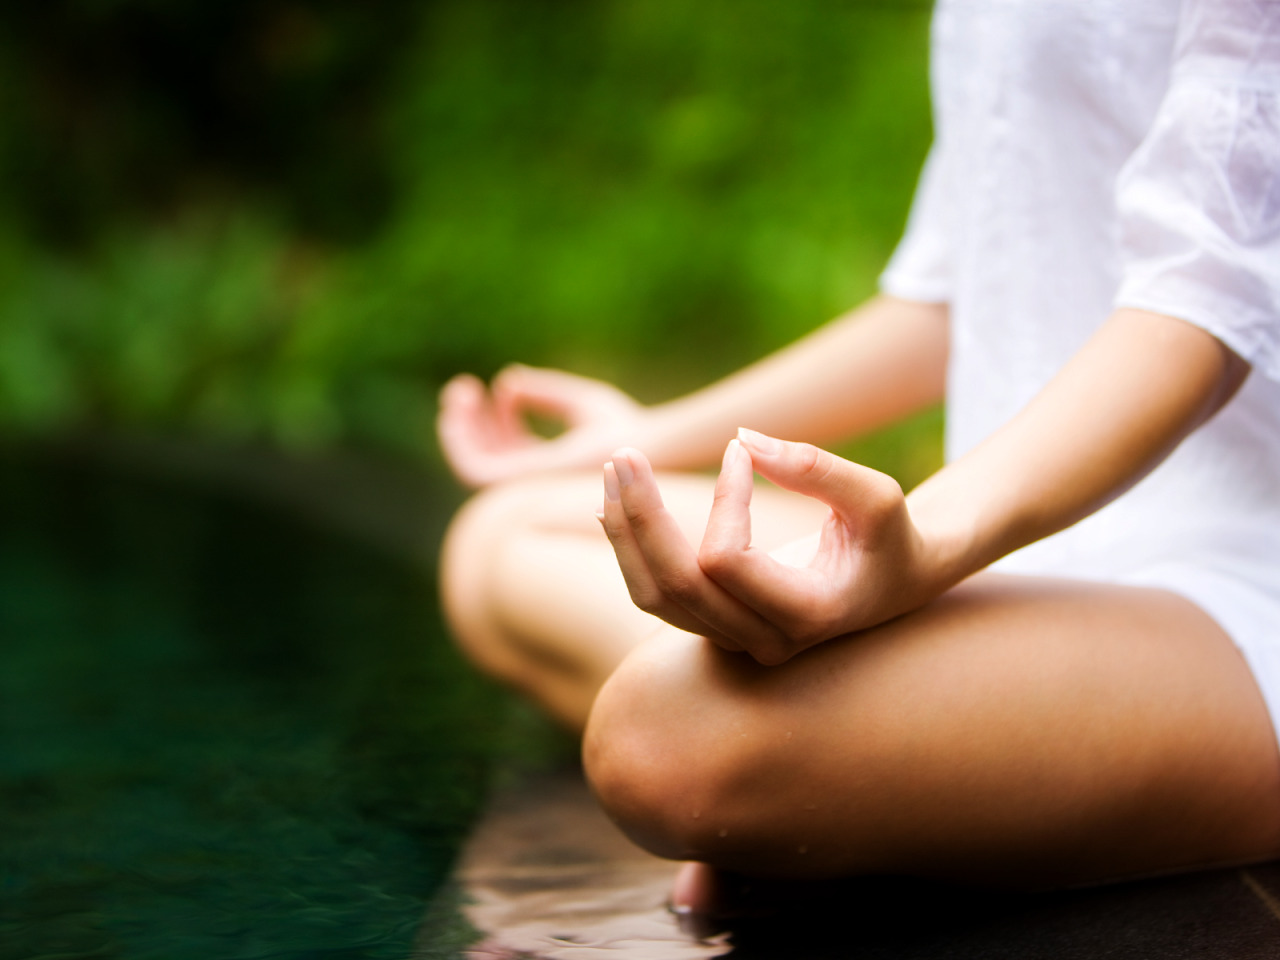 "Health Benefits Of Meditation Anastasia Stephens | SMHIt's a piece of advice yogis have given for thousands of years: take a deep breath and relax. Watch the tension melt from your muscles and all your niggling worries vanish. Somehow we all know that relaxation is good for us. Now the hard science has caught up: a comprehensive scientific study showing that deep relaxation changes our bodies on a genetic level has just been published. What researchers at Harvard Medical School discovered is that, in long-term practitioners of relaxation methods such as yoga and meditation, far more ""disease-fighting genes"" were active, compared to those who practised no form of relaxation. In particular, they found genes that protect from disorders such as pain, infertility, high blood pressure and even rheumatoid arthritis were switched on. The changes, say the researchers, were induced by what they call ""the relaxation effect"", a phenomenon that could be just as powerful as any medical drug but without the side effects. ""We found a range of disease-fighting genes were active in the relaxation practitioners that were not active in the control group,"" Dr Herbert Benson, associate professor of medicine at Harvard Medical School, who led the research, says. The good news for the control group with the less-healthy genes is that the research didn't stop there. The experiment, which showed just how responsive genes are to behaviour, mood and environment, revealed that genes can switch on, just as easily as they switch off. ""Harvard researchers asked the control group to start practising relaxation methods every day,"" says Jake Toby, hypnotherapist at London's BodyMind Medicine Centre, who teaches clients how to induce the relaxation effect. ""After two months, their bodies began to change: the genes that help fight inflammation, kill diseased cells and protect the body from cancer all began to switch on."" More encouraging still, the benefits of the relaxation effect were found to increase with regular practice: the more people practised relaxation methods such as meditation or deep breathing, the greater their chances of remaining free of arthritis and joint pain with stronger immunity, healthier hormone levels and lower blood pressure. Benson believes the research is pivotal because it shows how a person's state of mind affects the body on a physical and genetic level. It might also explain why relaxation induced by meditation or repetitive mantras is considered to be a powerful remedy in traditions such as Ayurveda in India or Tibetan medicine. But just how can relaxation have such wide-ranging and powerful effects? Research has described the negative effects of stress on the body. Linked to the release of the stress-hormones adrenalin and cortisol, stress raises the heart rate and blood pressure, weakens immunity and lowers fertility. By contrast, the state of relaxation is linked to higher levels of feel-good chemicals such as serotonin and to the growth hormone which repairs cells and tissue. Indeed, studies show that relaxation has virtually the opposite effect, lowering heart rate, boosting immunity and enabling the body to thrive. ""On a biological level, stress is linked to fight-flight and danger,"" Dr Jane Flemming, a London GP, says. ""In survival mode, heart rate rises and blood pressure shoots up. Meanwhile muscles, preparing for danger, contract and tighten. And non-essential functions such as immunity and digestion go by the wayside."" Relaxation, on the other hand, is a state of rest, enjoyment and physical renewal. Free of danger, muscles can relax and food can be digested. The heart can slow and blood circulation flows freely to the body's tissues, feeding it with nutrients and oxygen. This restful state is good for fertility, as the body is able to conserve the resources it needs to generate new life. While relaxation techniques can be very different, their biological effects are essentially similar. ""When you relax, the parasympathetic nervous system switches on. That is linked to better digestion, memory and immunity, among other things,"" Toby says. ""As long as you relax deeply, you'll reap the rewards."" But, he warns, deep relaxation isn't the sort of switching off you do relaxing with a cup of tea or lounging on the sofa. ""What you're looking for is a state of deep relaxation where tension is released from the body on a physical level and your mind completely switches off,"" he says. ""The effect won't be achieved by lounging round in an everyday way, nor can you force yourself to relax. You can only really achieve it by learning a specific technique such as self-hypnosis, guided imagery or meditation."" The relaxation effect, however, may not be as pronounced on everyone. ""Some people are more susceptible to relaxation methods than others,"" says Joan Borysenko, director of a relaxation program for outpatients at Beth Israel Deaconess Medical Centre in Boston. ""Through relaxation, we find some people experience a little improvement, others a lot. And there are a few whose lives turn around totally."" 7 Health Benefits of Deep Relaxation  The next time you tune out and switch off and let yourself melt, remind yourself of all the good work the relaxation effect is doing on your body. These are just some of the scientifically proven benefits …1. INCREASED IMMUNITY Relaxation appears to boost immunity in recovering cancer patients. A study at the Ohio State University found that progressive muscular relaxation, when practised daily, reduced the risk of breast cancer recurrence. In another study at Ohio State, a month of relaxation exercises boosted natural killer cells in the elderly, giving them a greater resistance to tumours and to viruses.2. EMOTIONAL BALANCE Emotional balance, means to be free of all the neurotic behavior that results from the existence of a tortured and traumatized ego. This is very hard to achieve fully, but meditation certainly is the way to cure such neurosis and unhealthy emotional states. As one's consciousness is cleansed of emotionally soaked memories, not only does great freedom abound, but also great balance. As one's responses then are not colored by the burdens one carries, but are instead true, direct and appropriate.3. INCREASED FERTILITY A study at the University of Western Australia found that women are more likely to conceive during periods when they are relaxed rather than stressed. A study at Trakya University, in Turkey, also found that stress reduces sperm count and motility, suggesting relaxation may also boost male fertility.4. RELIEVES IRRITABLE BOWEL SYNDROME When patients suffering from irritable bowel syndrome began practising a relaxation meditation twice daily, their symptoms of bloating, diarrhoea and constipation improved significantly. The meditation was so effective the researchers at the State University of New York recommended it as an effective treatment.5. LOWERS BLOOD PRESSURE A study at Harvard Medical School found that meditation lowered blood pressure by making the body less responsive to stress hormones, in a similar way to blood pressure-lowering medication. Meanwhile a British Medical Journal report found that patients trained how to relax had significantly lower blood pressure.6. ANTI-INFLAMATORY Stress leads to inflammation, a state linked to heart disease, arthritis, asthma and skin conditions such as psoriasis, say researchers at Emory University in the US. Relaxation can help prevent and treat such symptoms by switching off the stress response. In this way, one study at McGill University in Canada found that meditation clinically improved the symptoms of psoriasis.7. CALMNESS The simple difference between those who meditate and those who do not, is that for a meditative mind the thought occurs but is witnessed, while for an ordinary mind, the thought occurs and is the boss. So in both minds, an upsetting thought can occur, but for those who meditate it is just another thought, which is seen as such and is allowed to blossom and die, while in the ordinary mind the thought instigates a storm which rages on and on. How to switch off stress  How can you use relaxation's healing powers? Harvard researchers found that yoga, meditation and even repetitive prayer and mantras all induced the relaxation effect. ""The more regularly these techniques are practised, the more deeply rooted the benefits will be,"" Jake Toby says. Try one or more of these techniques for 15 minutes once or twice a day.Body Scan: Starting with your head and working down to your arms and feet, notice how you feel in your body. Taking in your head and neck, simply notice if you feel tense, relaxed, calm or anxious. See how much you can spread any sensations of softness and relaxation to areas of your body that feel tense. Once your reach your feet, work back up your body.Breath Focus: Sit comfortably. Tune into your breath, follow the sensation of inhaling from your nose to abdomen and out again. Let tension go with each exhalation. When you notice your mind wandering, return to your breath.Mantra Repetition: The relaxation response can be evoked by sitting quietly with eyes closed for 15 minutes twice a day, and mentally repeating a simple word or sound such as ""Om"".Guided Imagery: Imagine a wonderfully relaxing light or a soothing waterfall washing away tension from your body and mind. Make your image vivid, imagining texture, colour and any fragrance as the image washes over you."